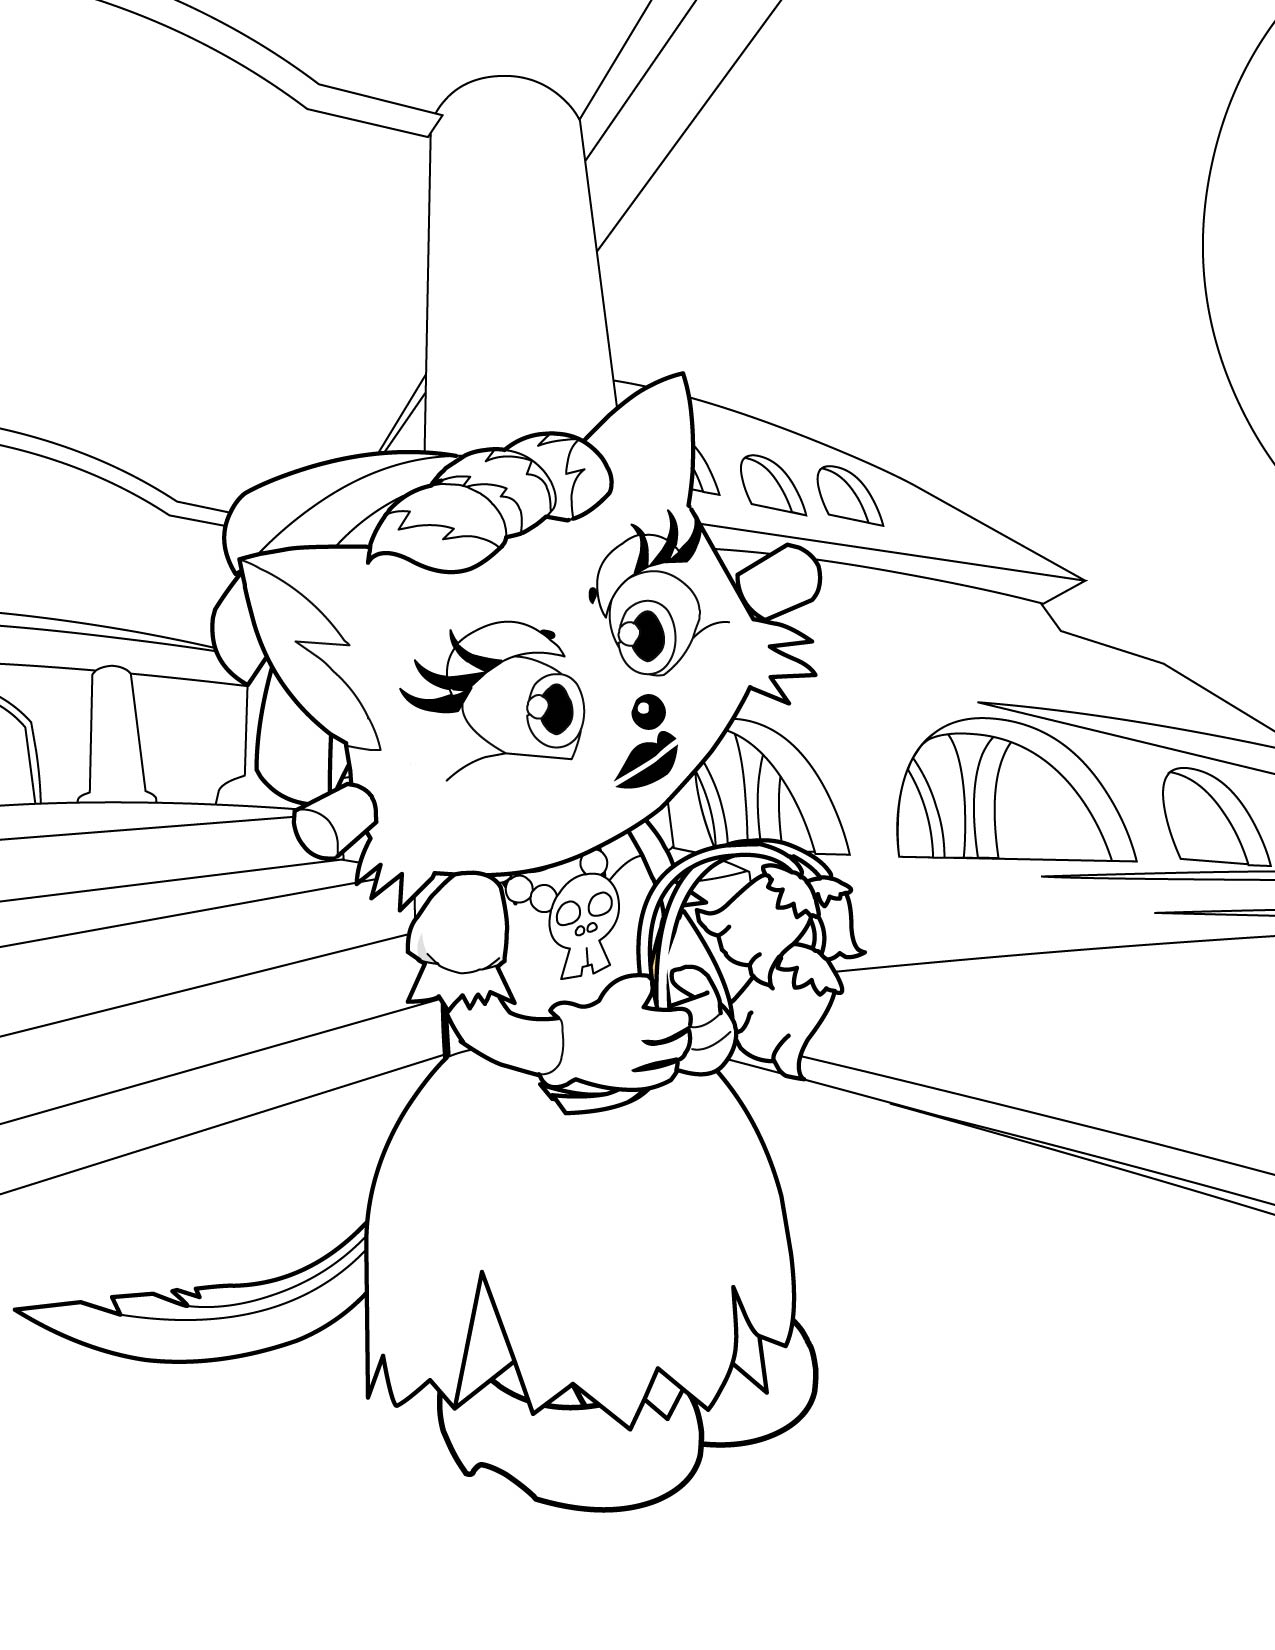 Bride Of Frankenstein Coloring Pages At Getdrawings Com Free For